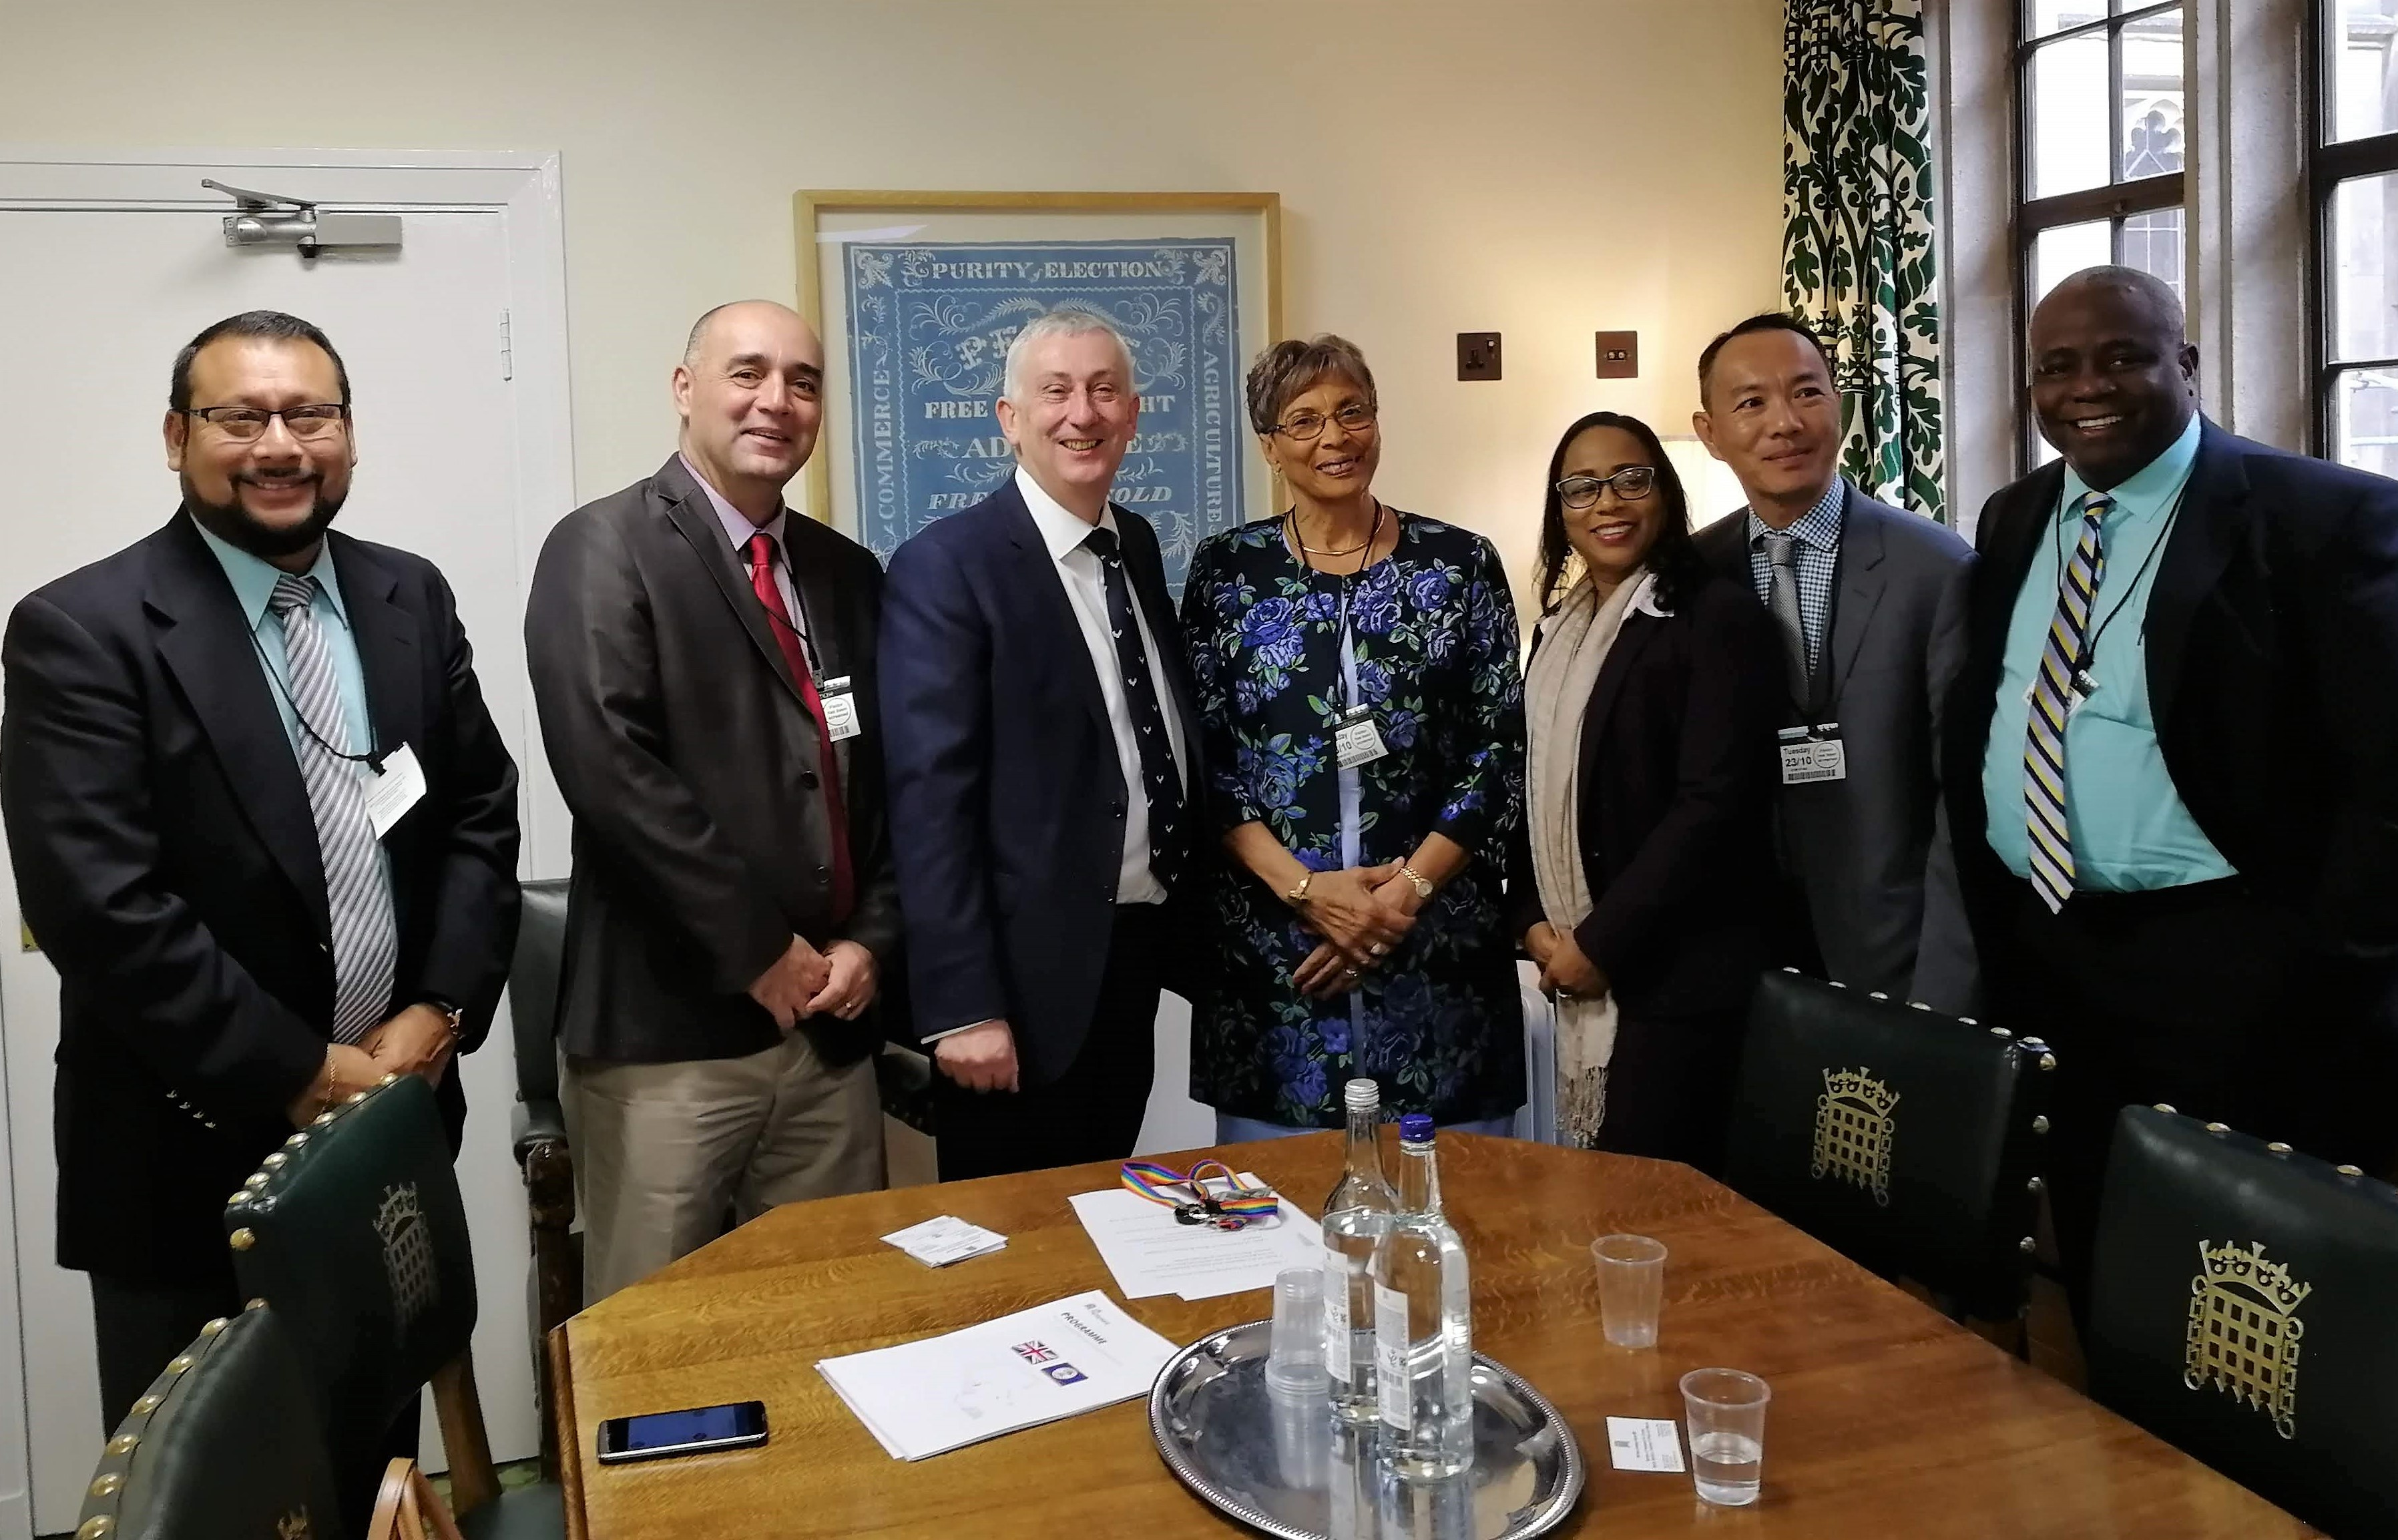 The delegation meets with Deputy Speaker Rt Hon.Sir Lindsay Hoyle MP